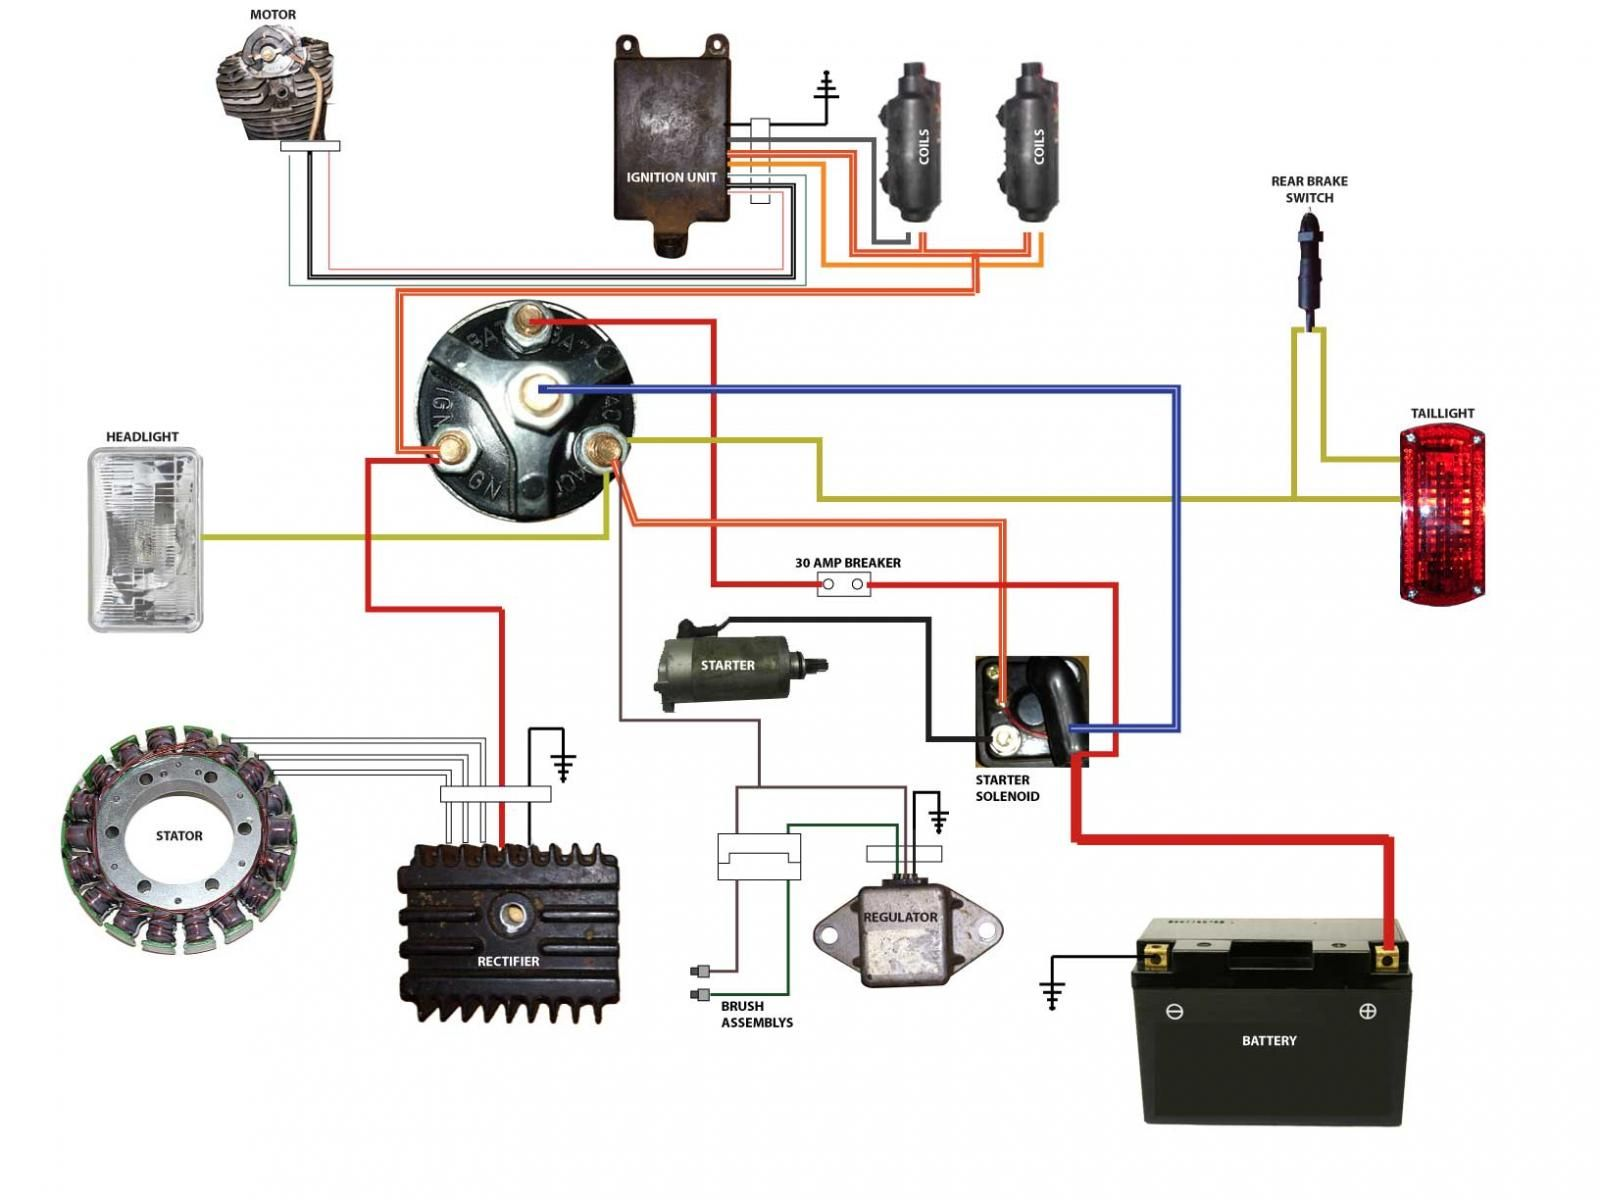 d72b6b9978ded4378b16620a38821410 simplified wiring diagram for xs400 cafe motorcycle wiring XS400 Forum at couponss.co